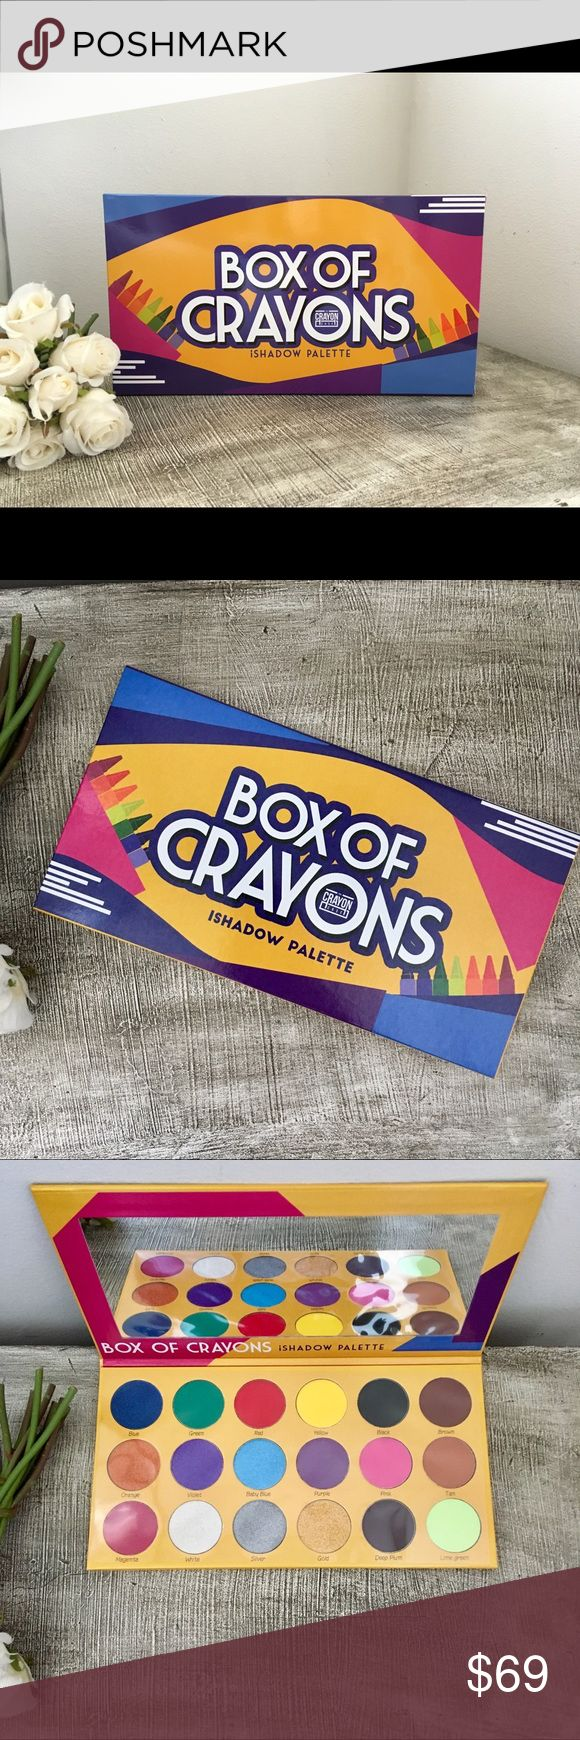 The Crayon Case Box of Crayons Eyeshadow Crayon, Case